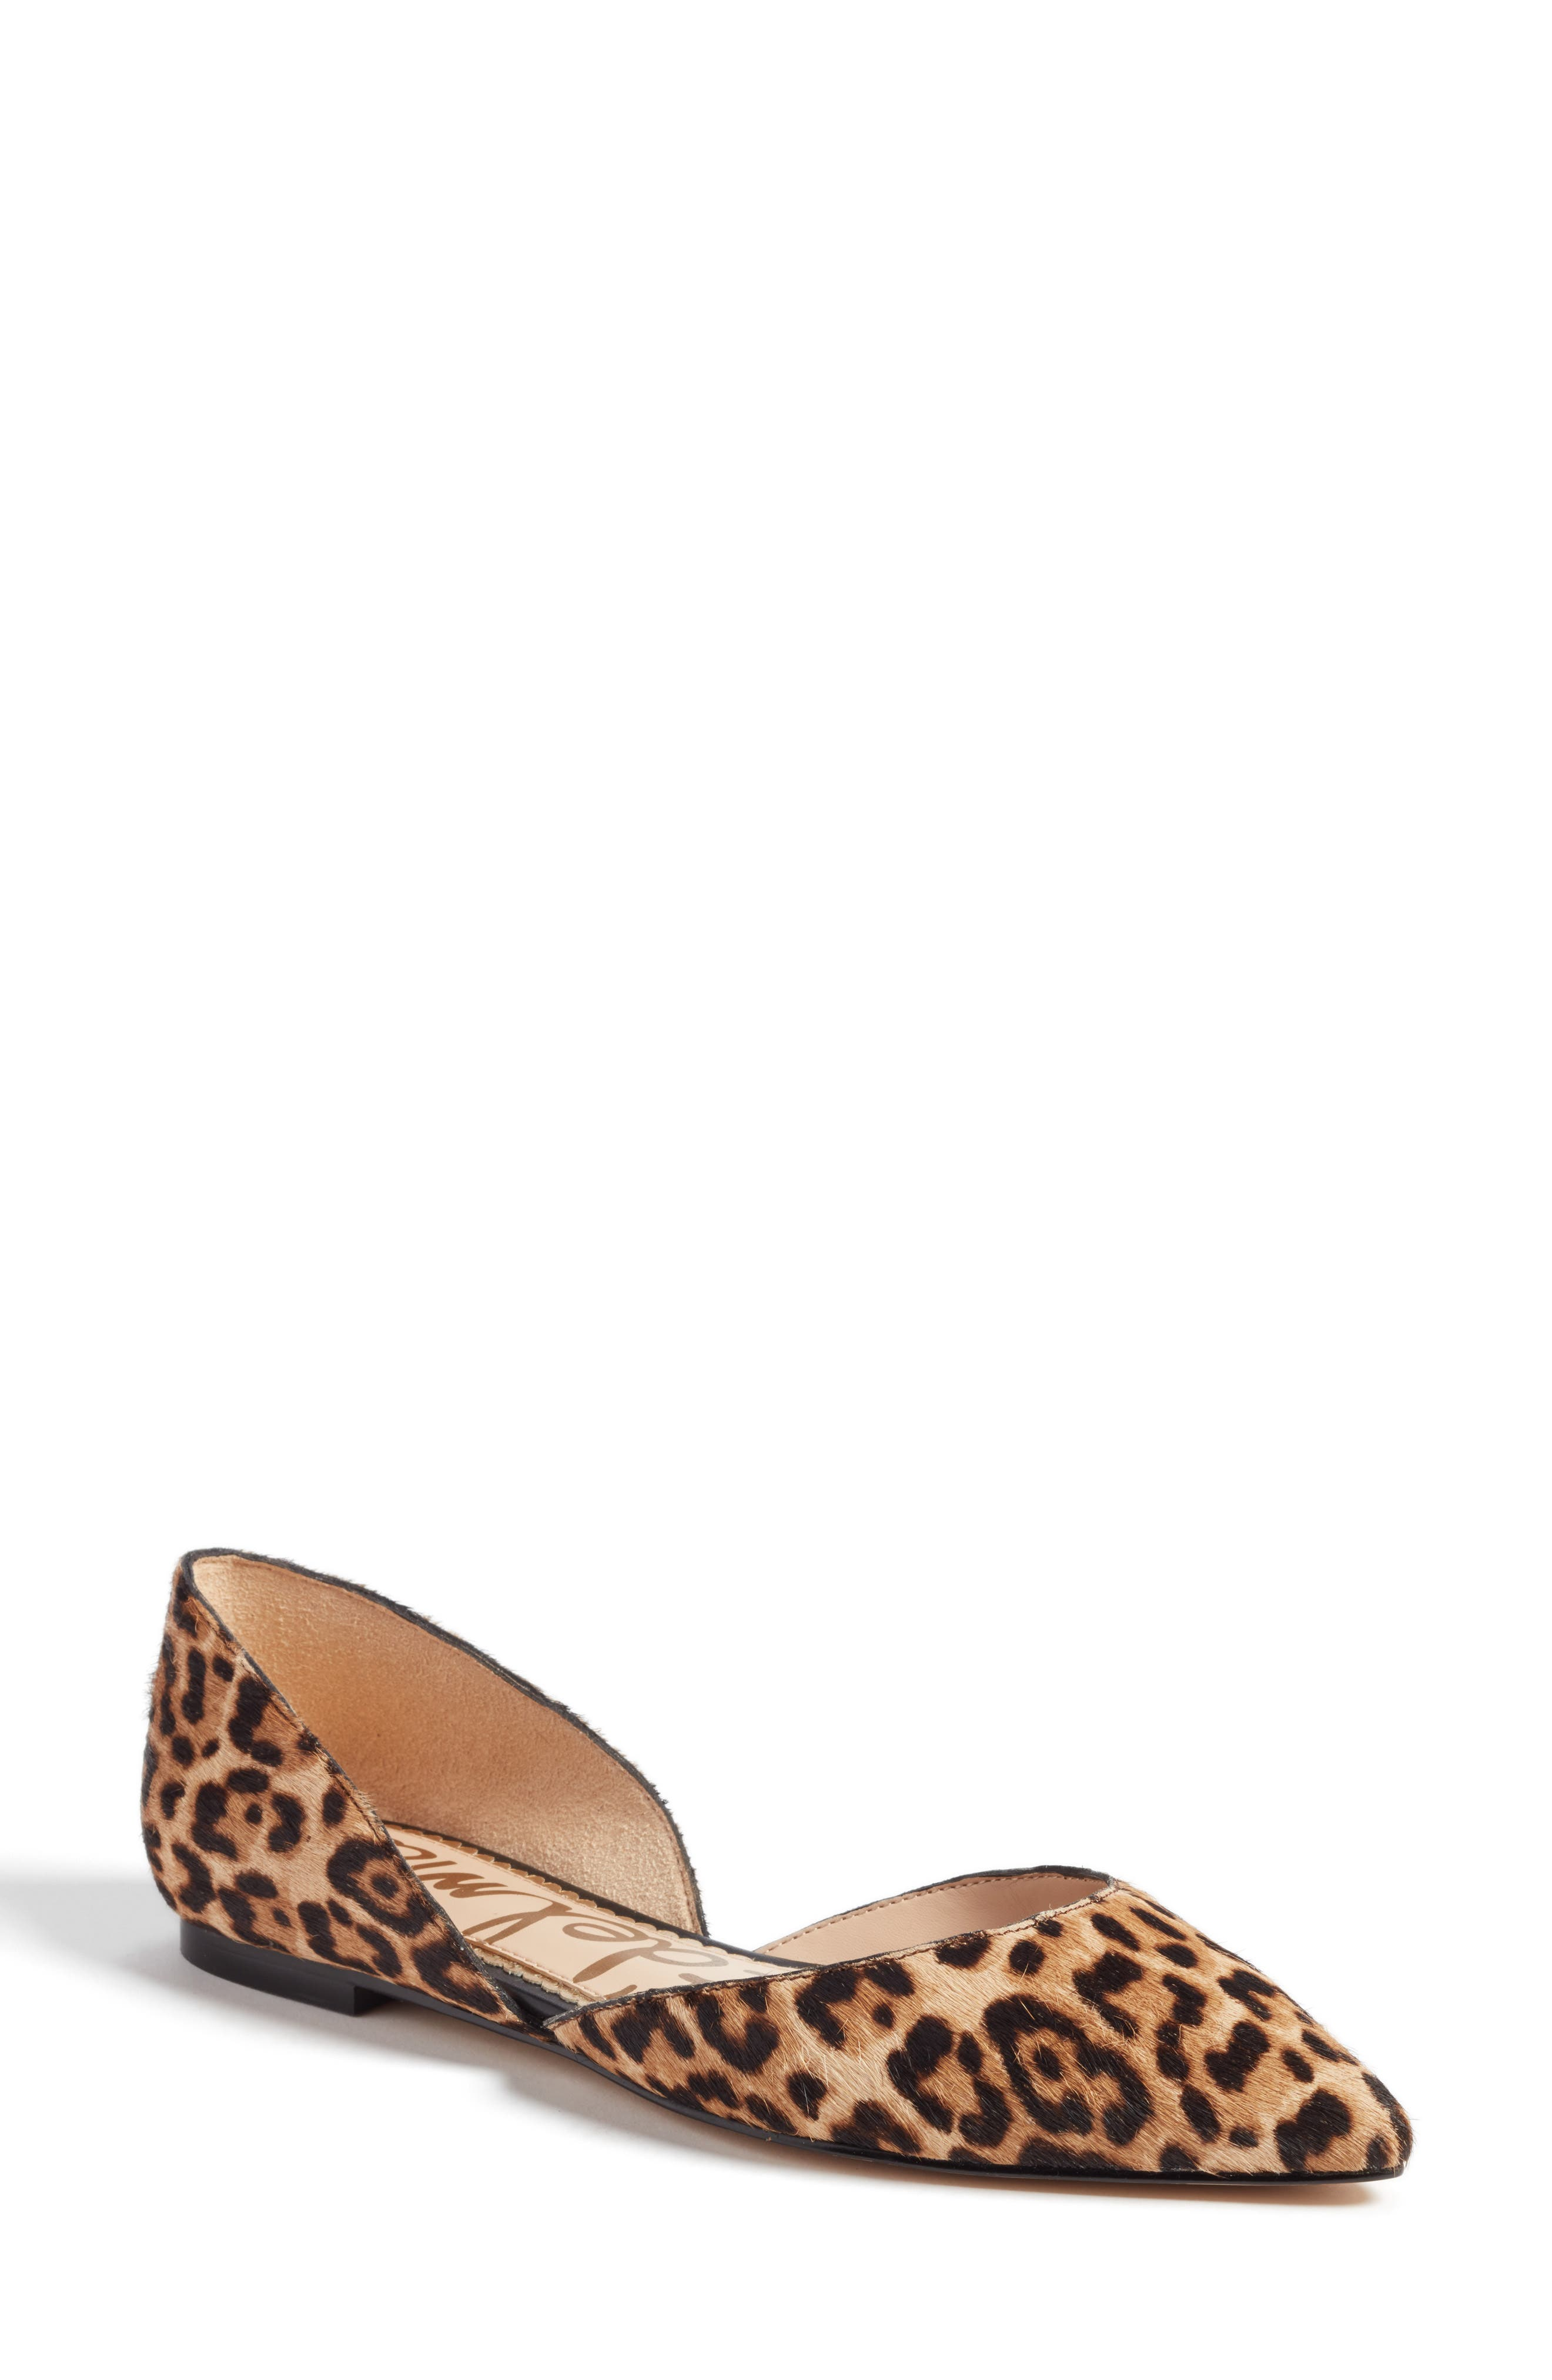 Rodney Pointy Toe Genuine Calf Hair Flat,                         Main,                         color, Sand Leopard Calf Hair